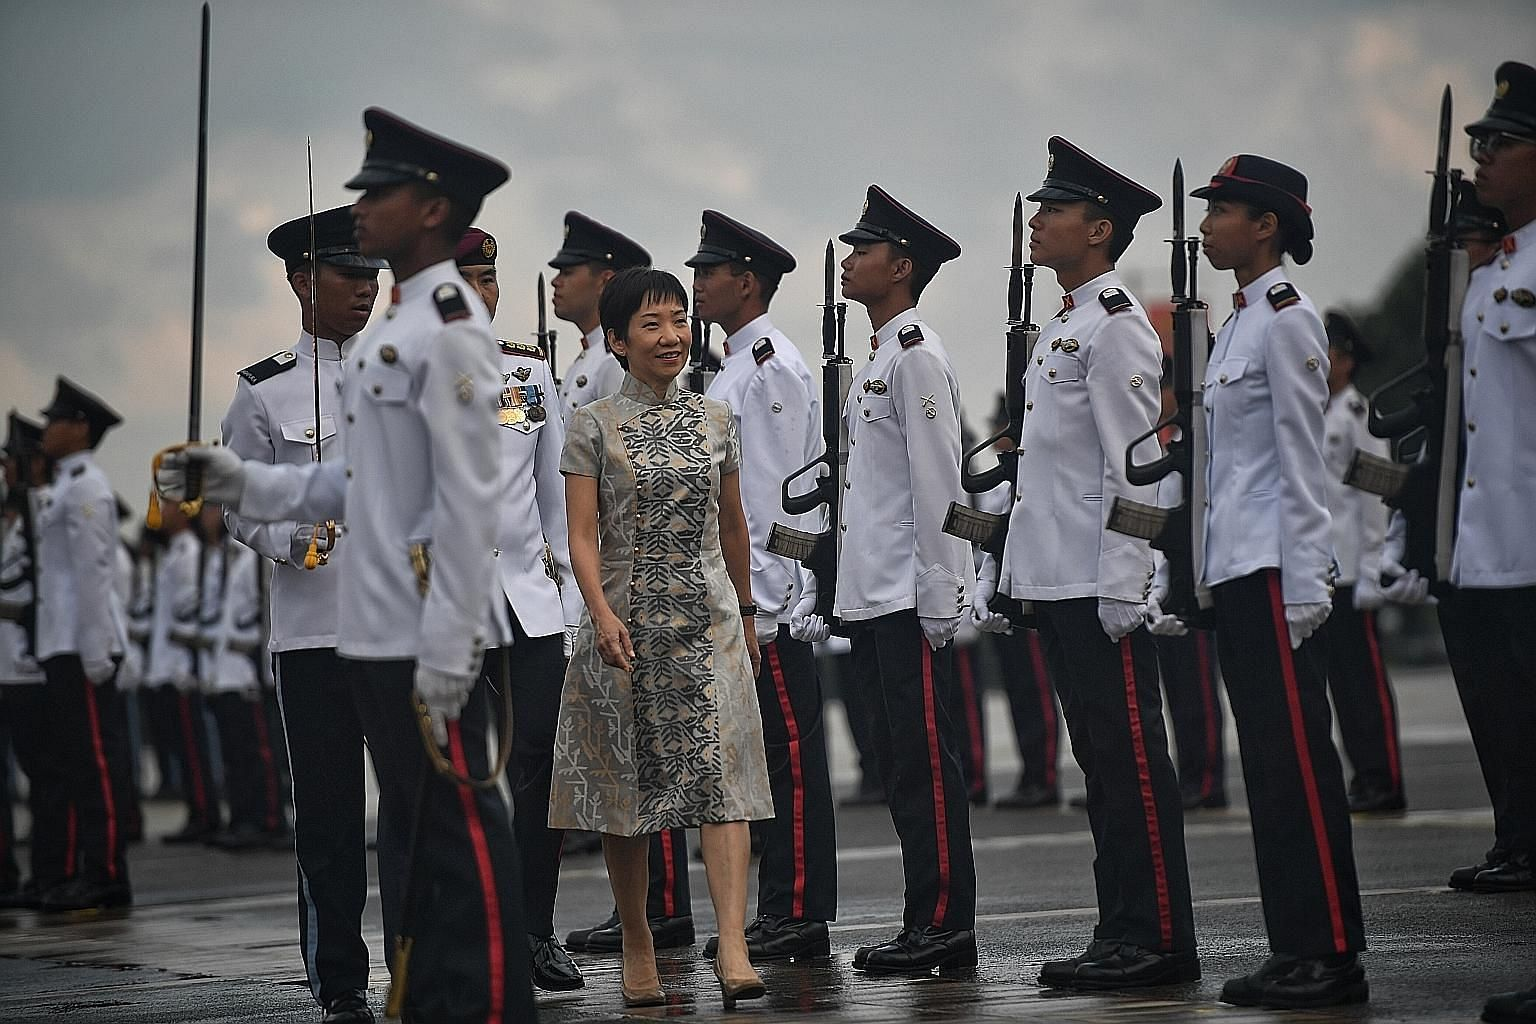 """Minister for Culture, Community and Youth Grace Fu at the parade at Safti Military Institute yesterday. She urged the 220 newly commissioned officers from the army, navy and air force to """"lead by example and drive a culture of safety on the ground""""."""